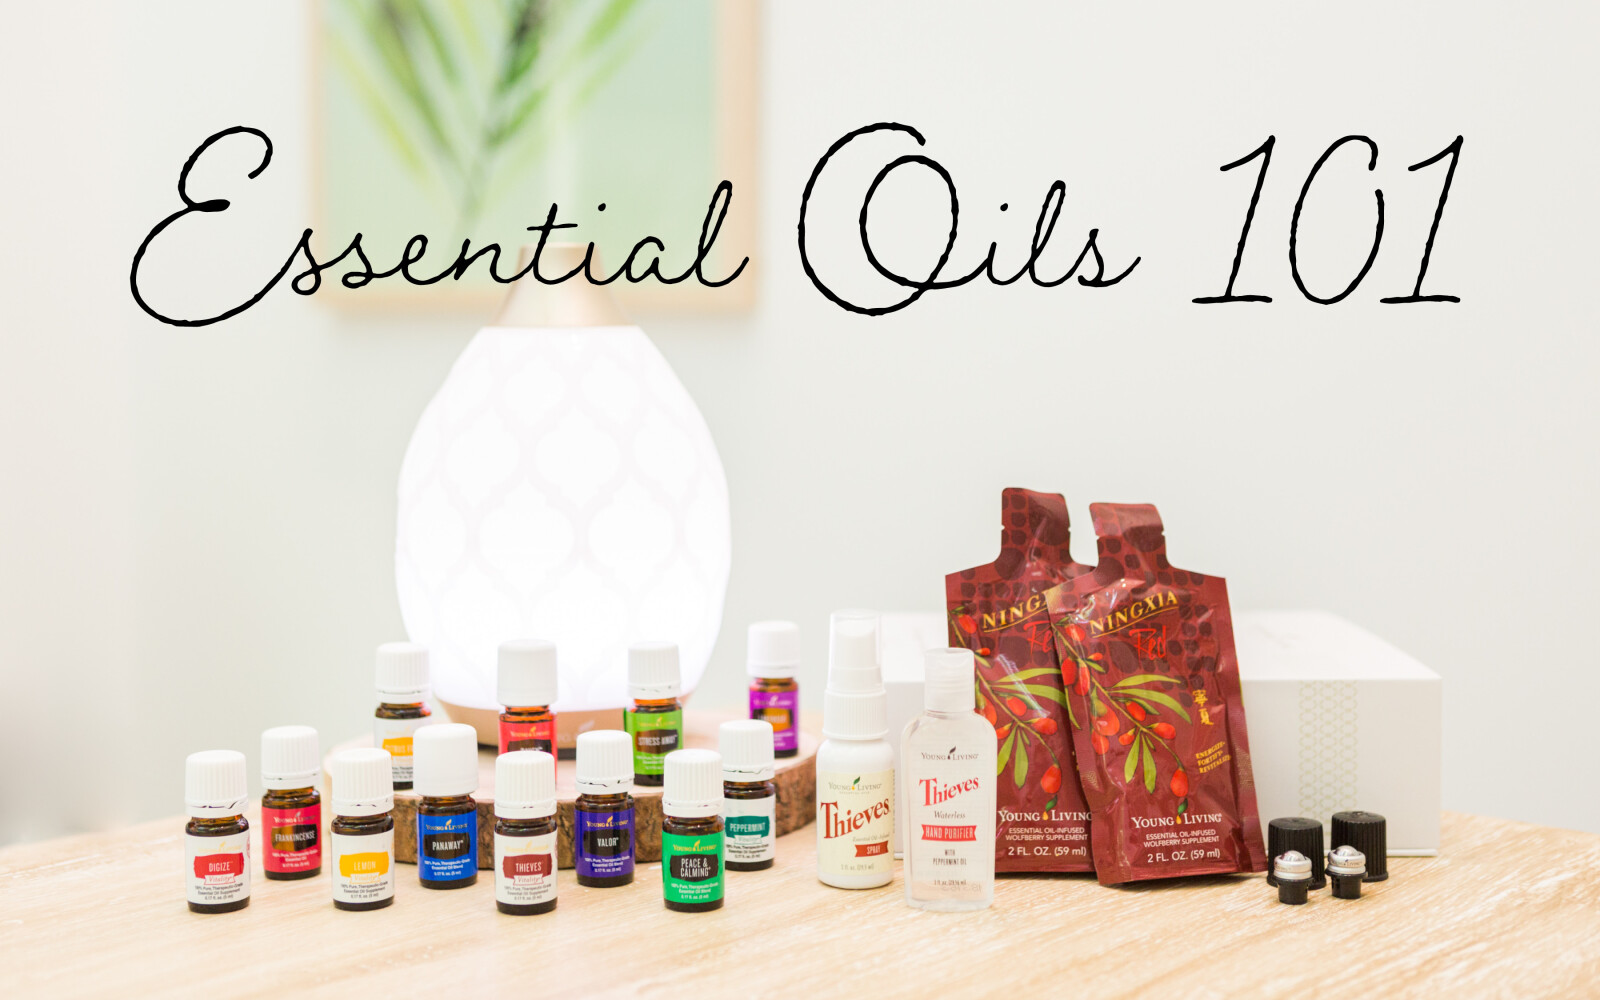 Essential Oils 101 Webinar